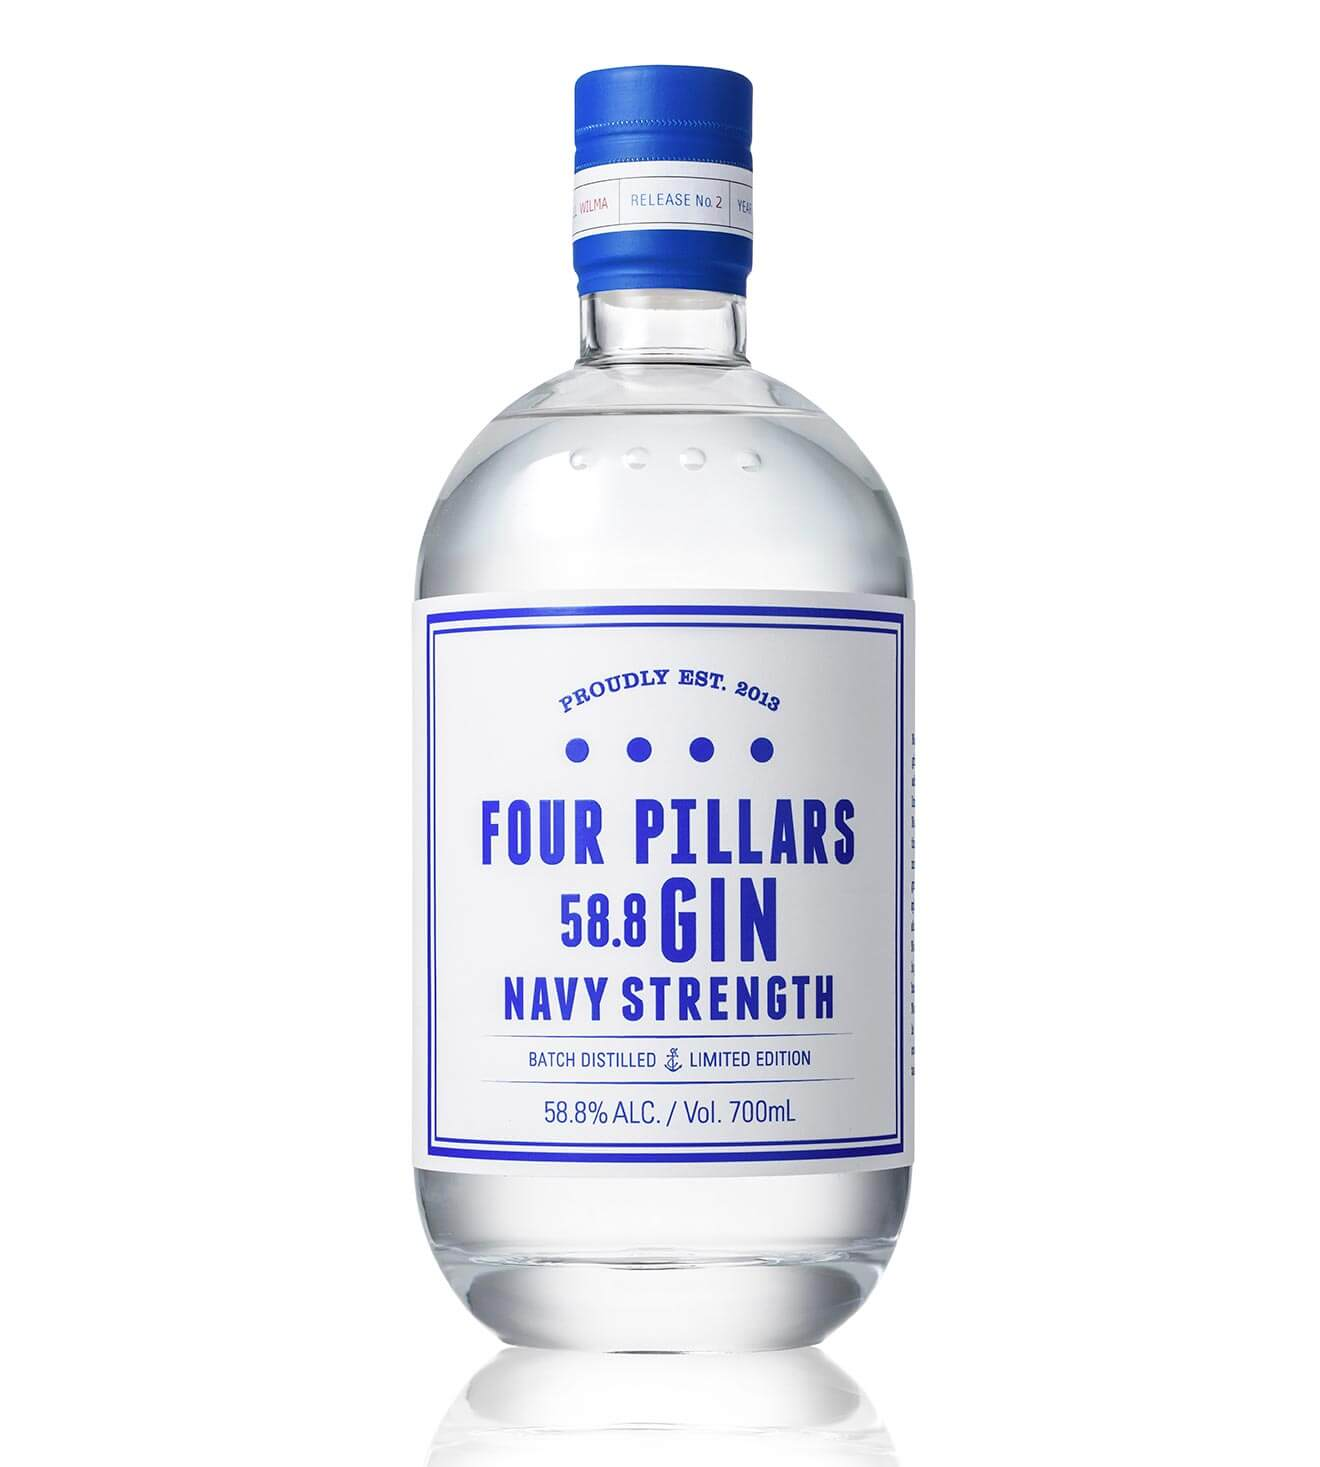 Four Pillars Navy Strength Gin, bottle on white